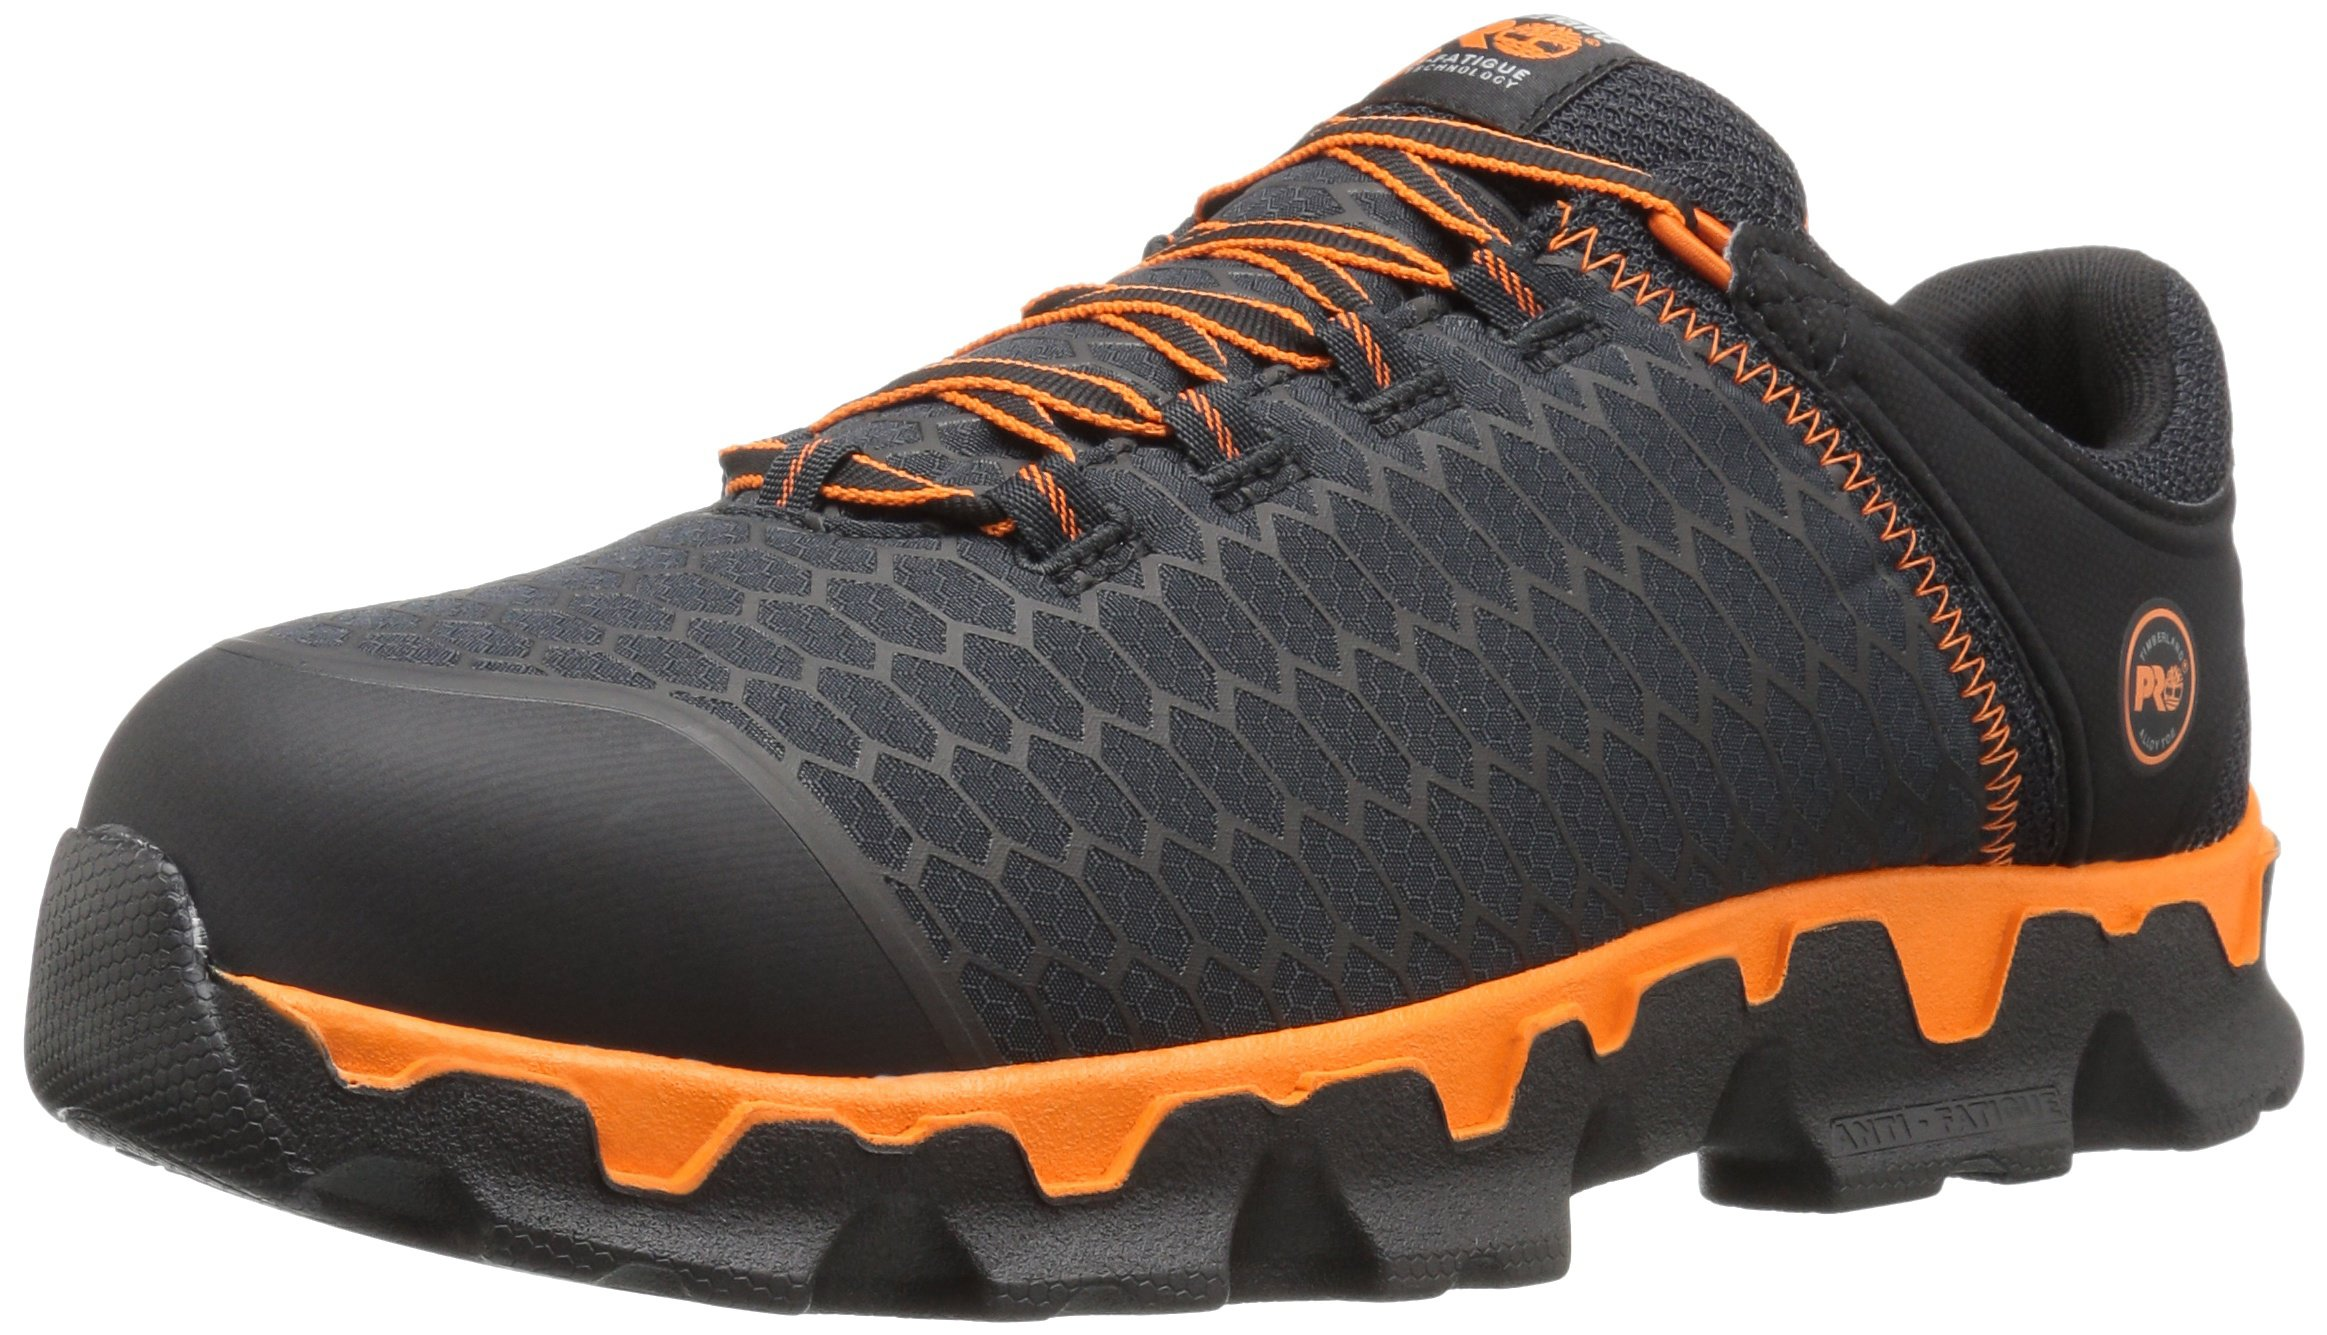 Timberland PRO Men's Powertrain Sport Alloy Toe EH Industrial and Construction Shoe, Black Synthetic/Orange, 10.5 M US